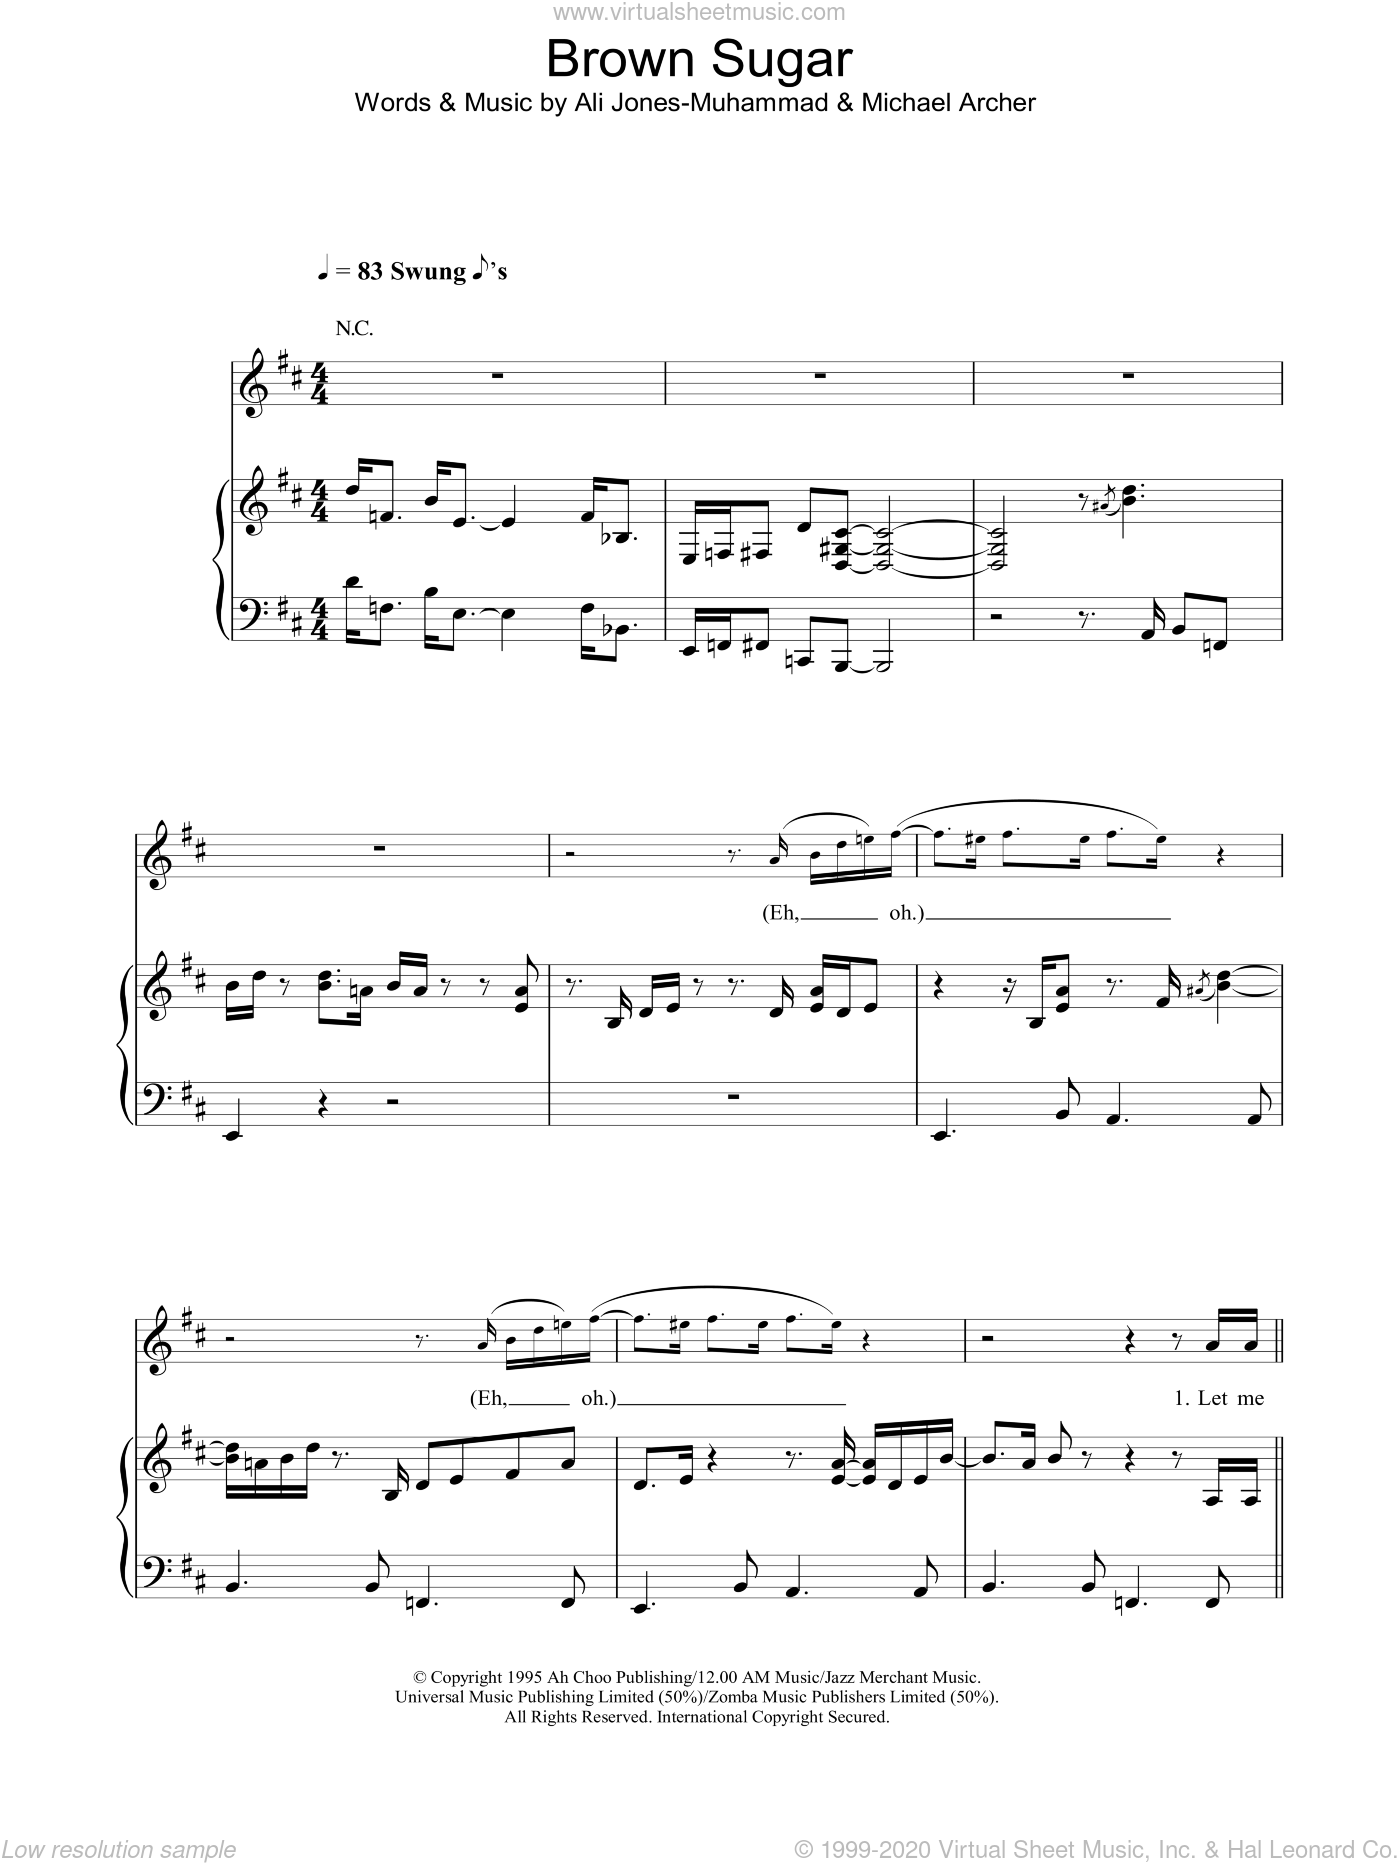 Brown Sugar sheet music for voice, piano or guitar by Michael Archer and Ali Jones-Muhammad